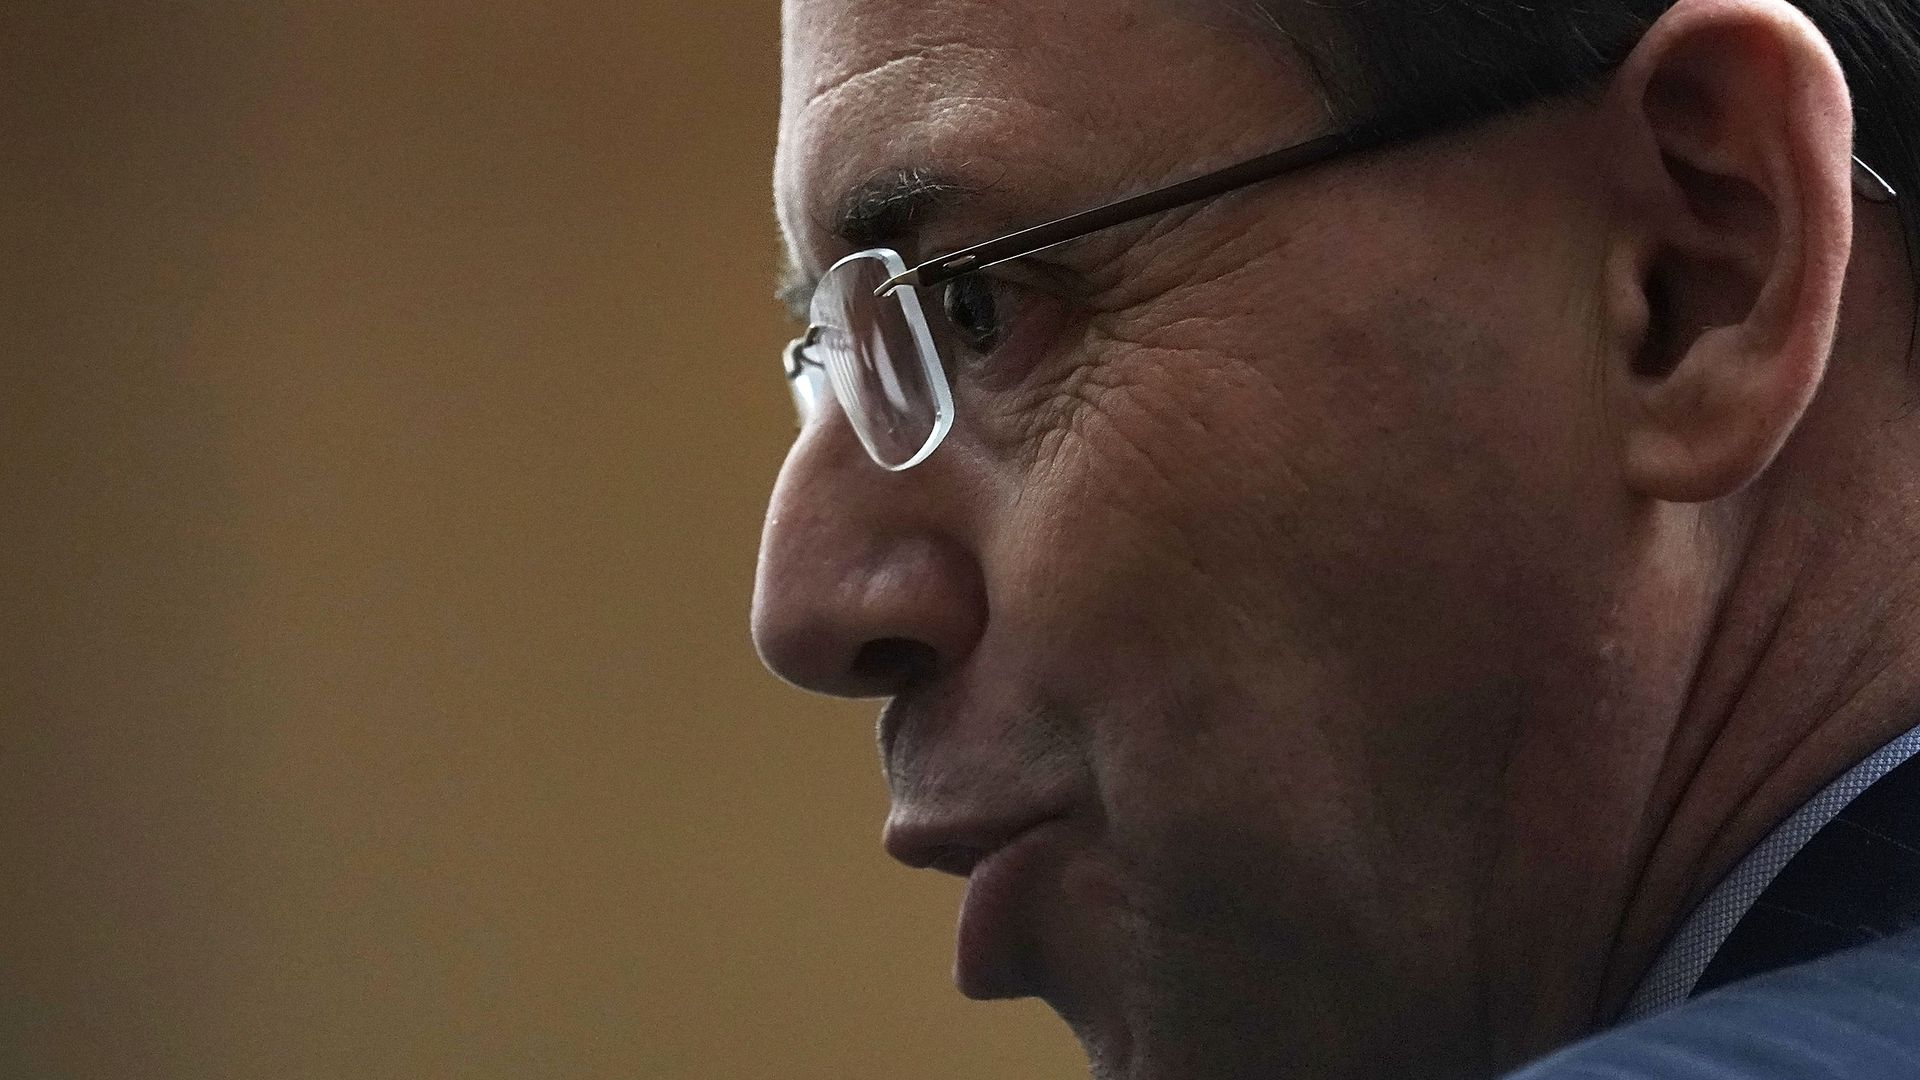 Profile of Rod Rosenstein wearing glasses with his lips puckered